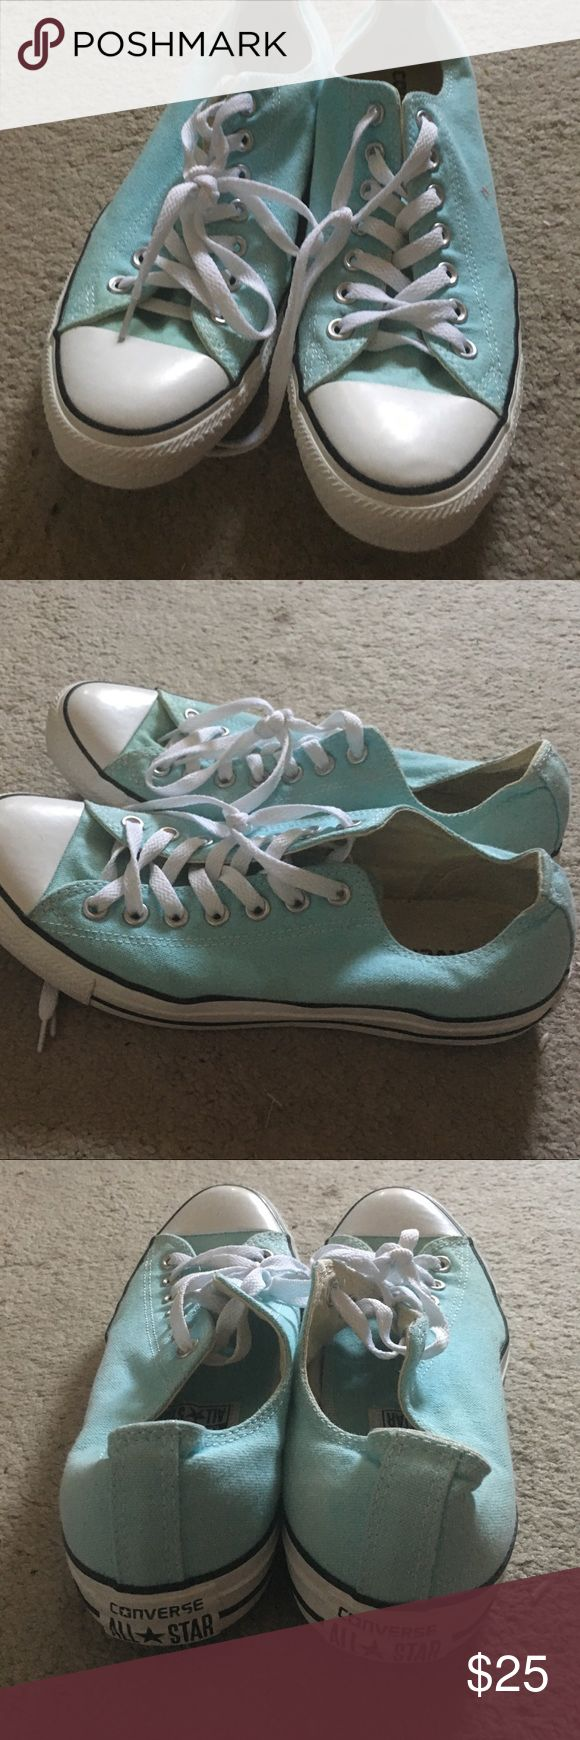 Converse sky blue Women 11 Mens 9 Purchased from converse store worn three times to universal studios just too small on me now has small spot on left side as pictured hard to see amazing condition aside Converse Shoes Sneakers